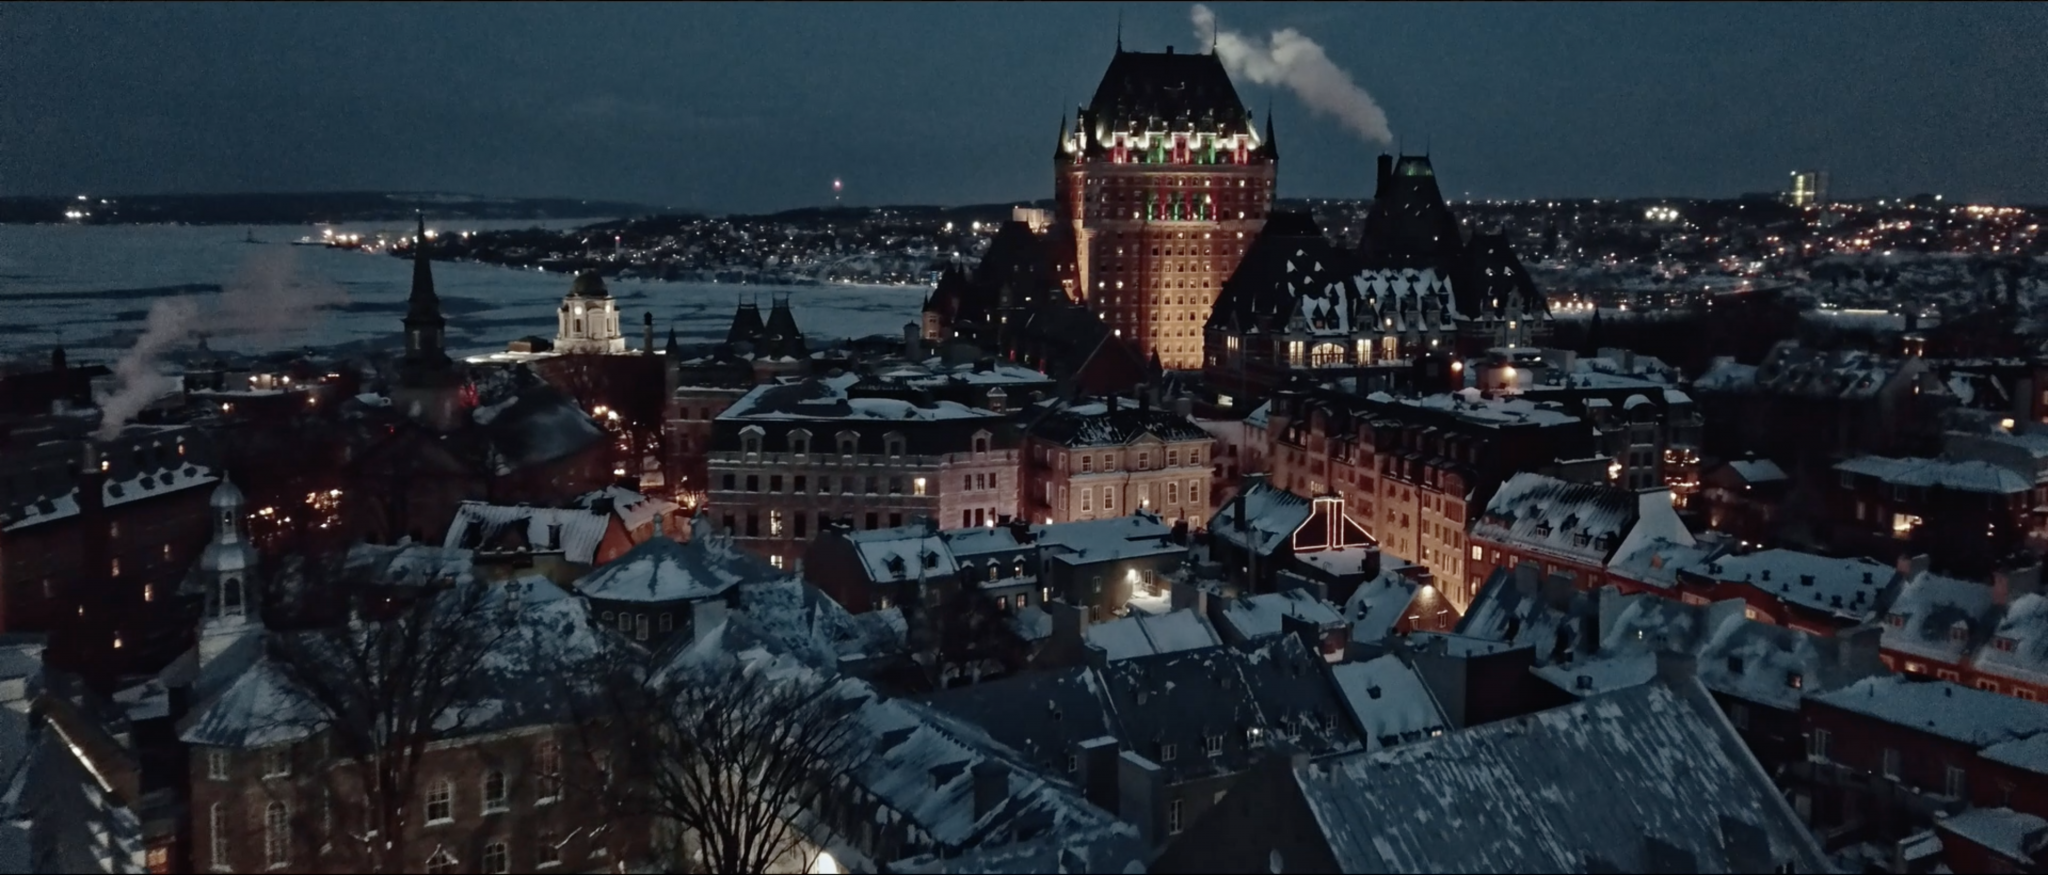 Aerial View of Quebec City at Night